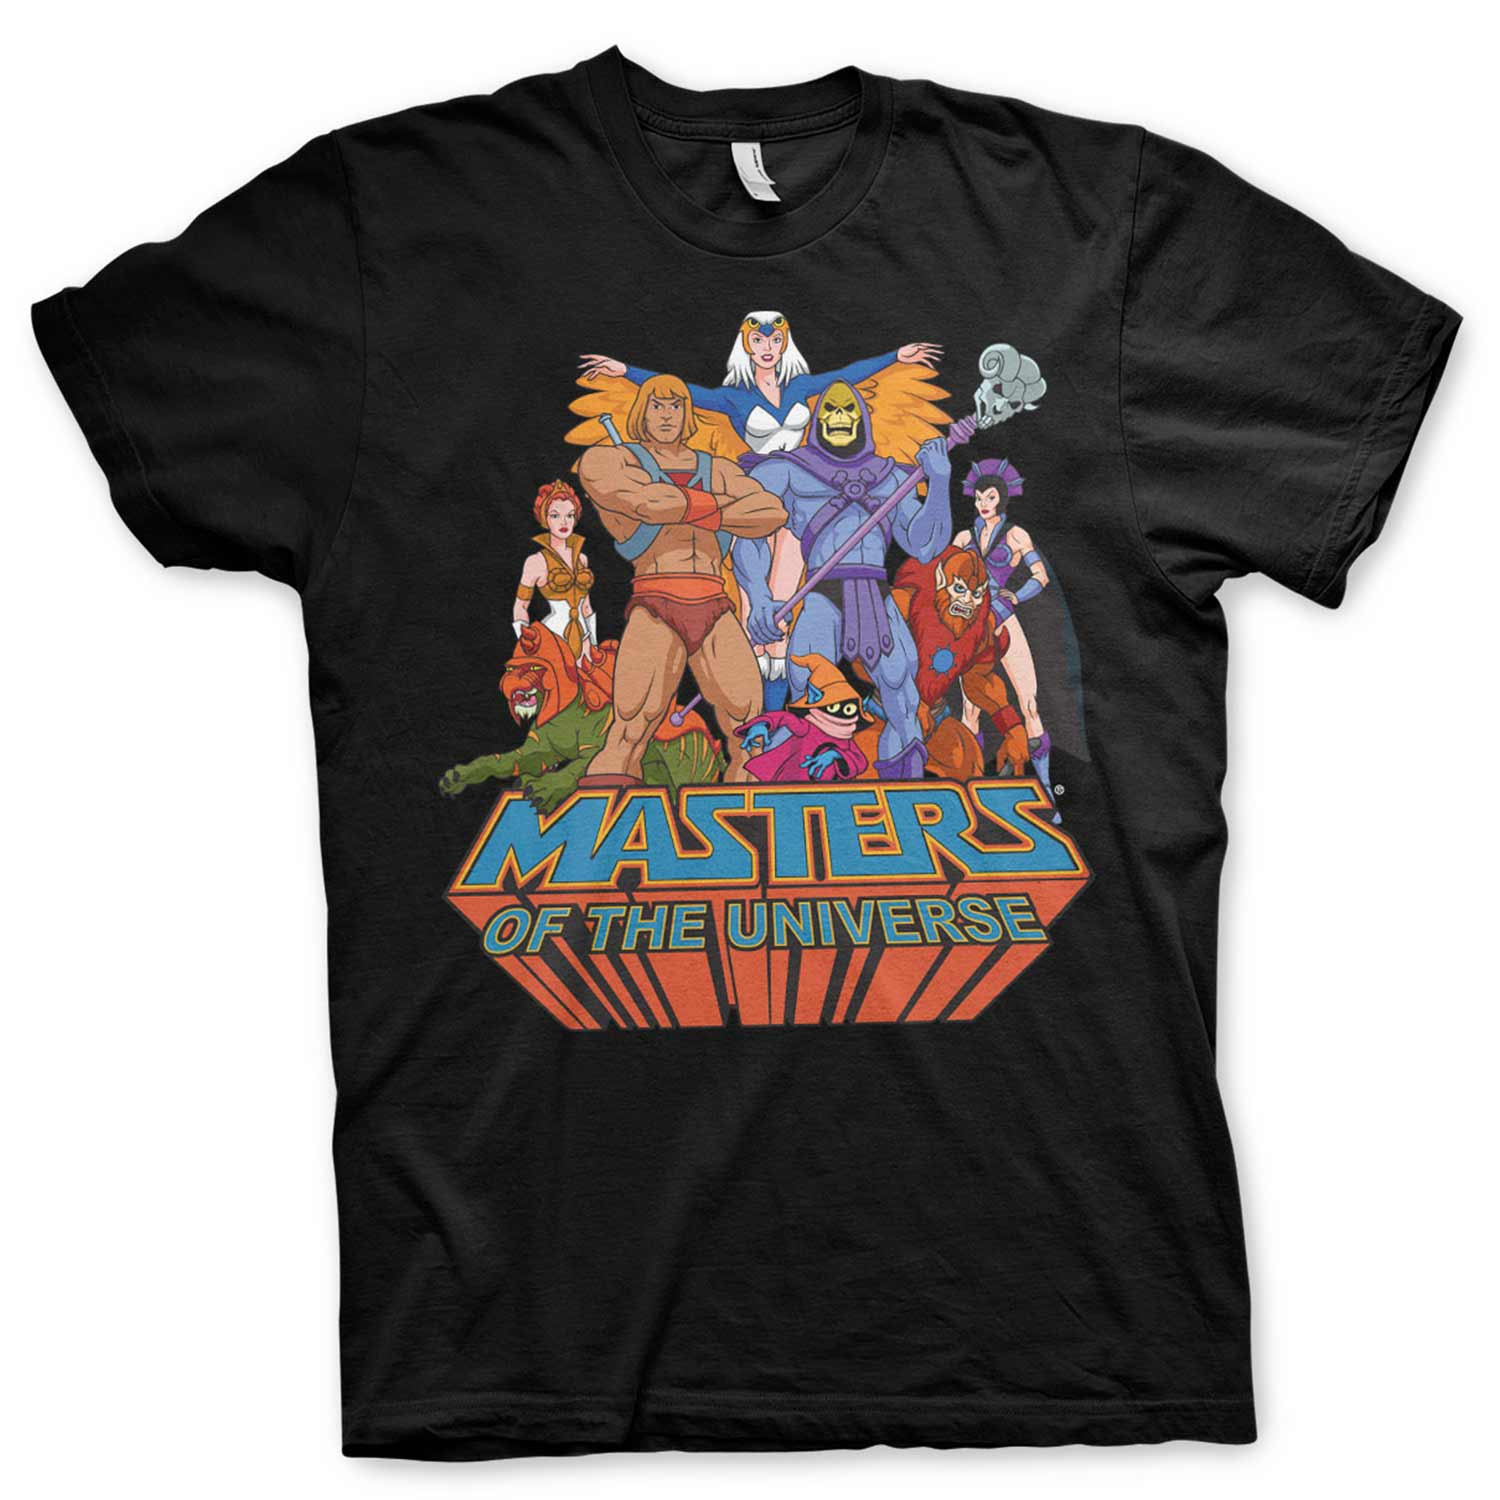 MASKED MASTERS OF THE UNIVERSEHerren-Shirt